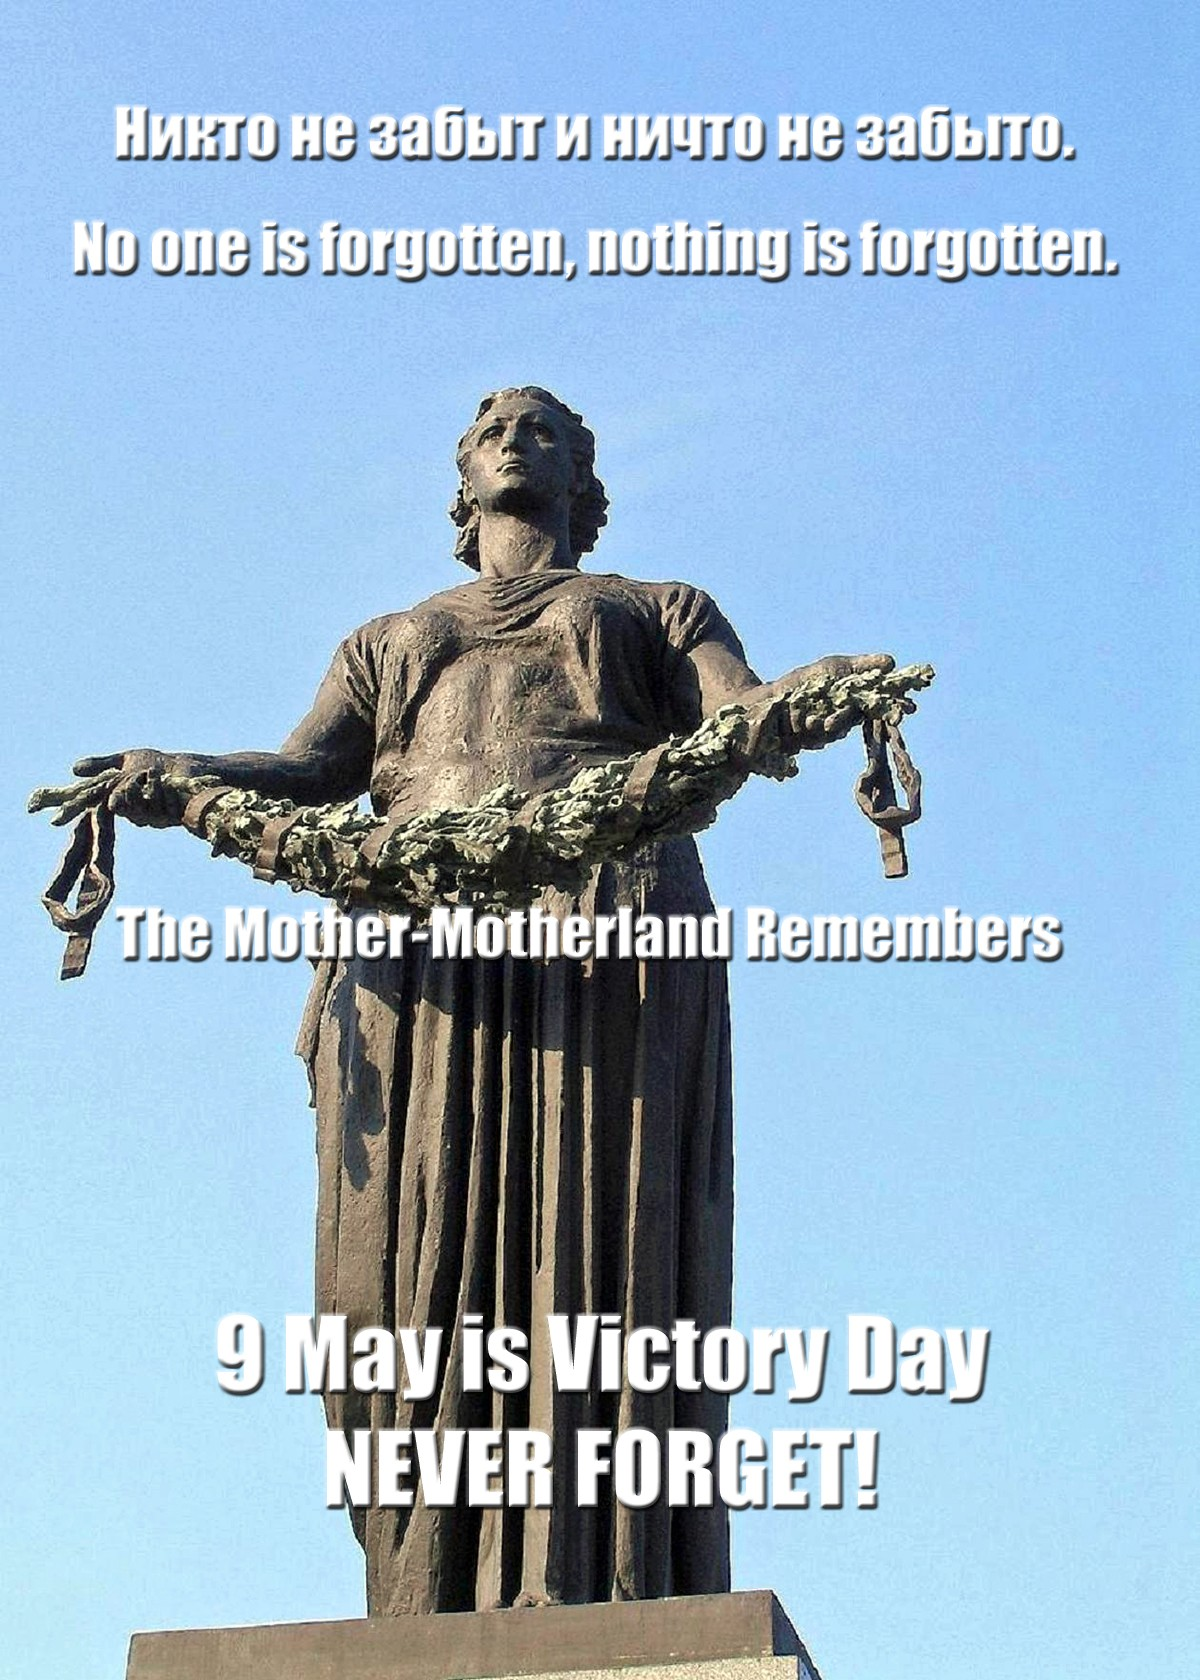 9 May is Victory Day. Berggolts